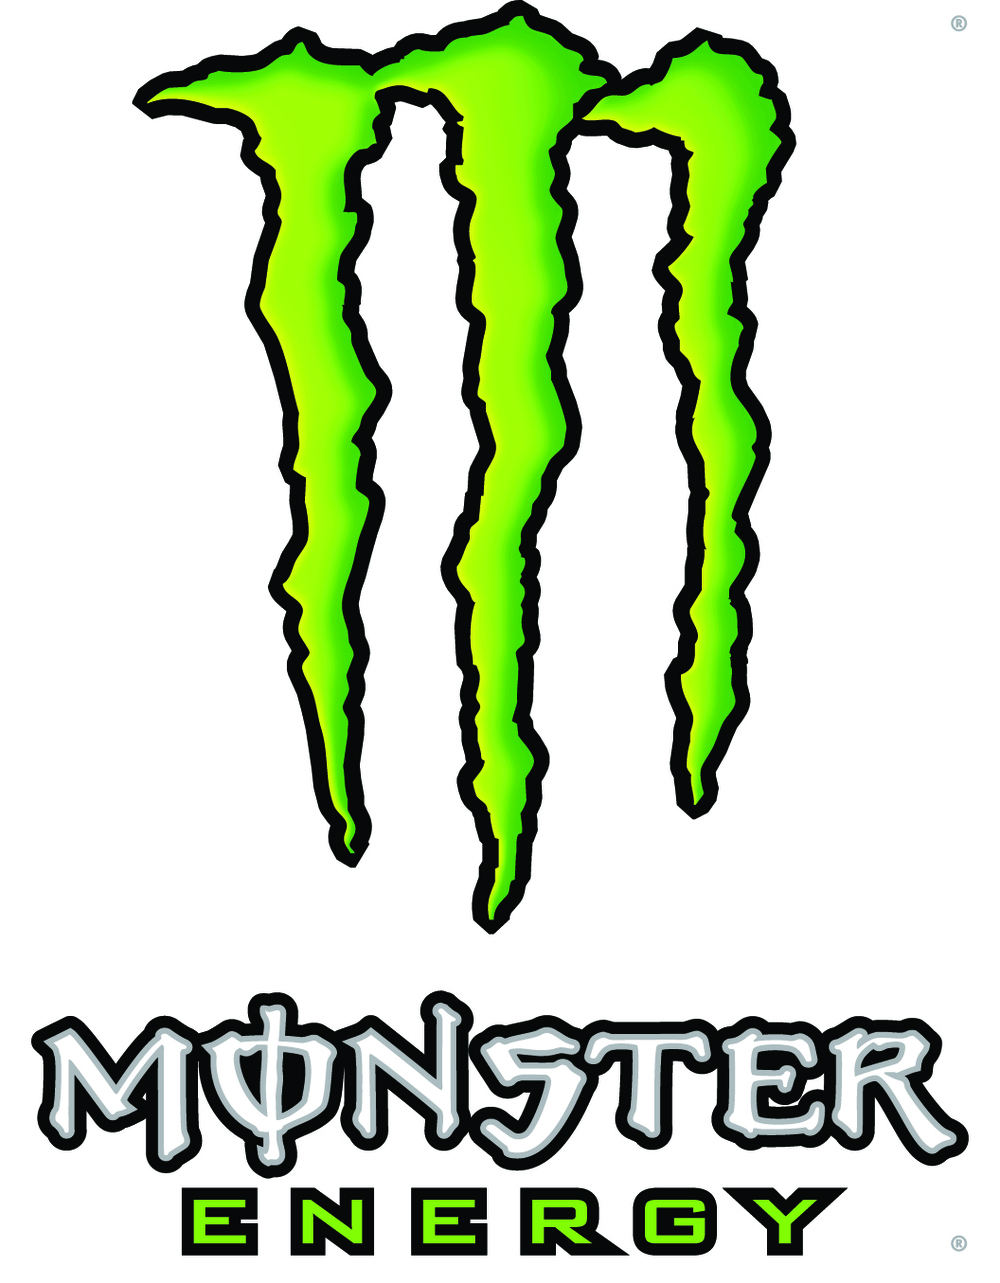 Monster Energy.jpeg